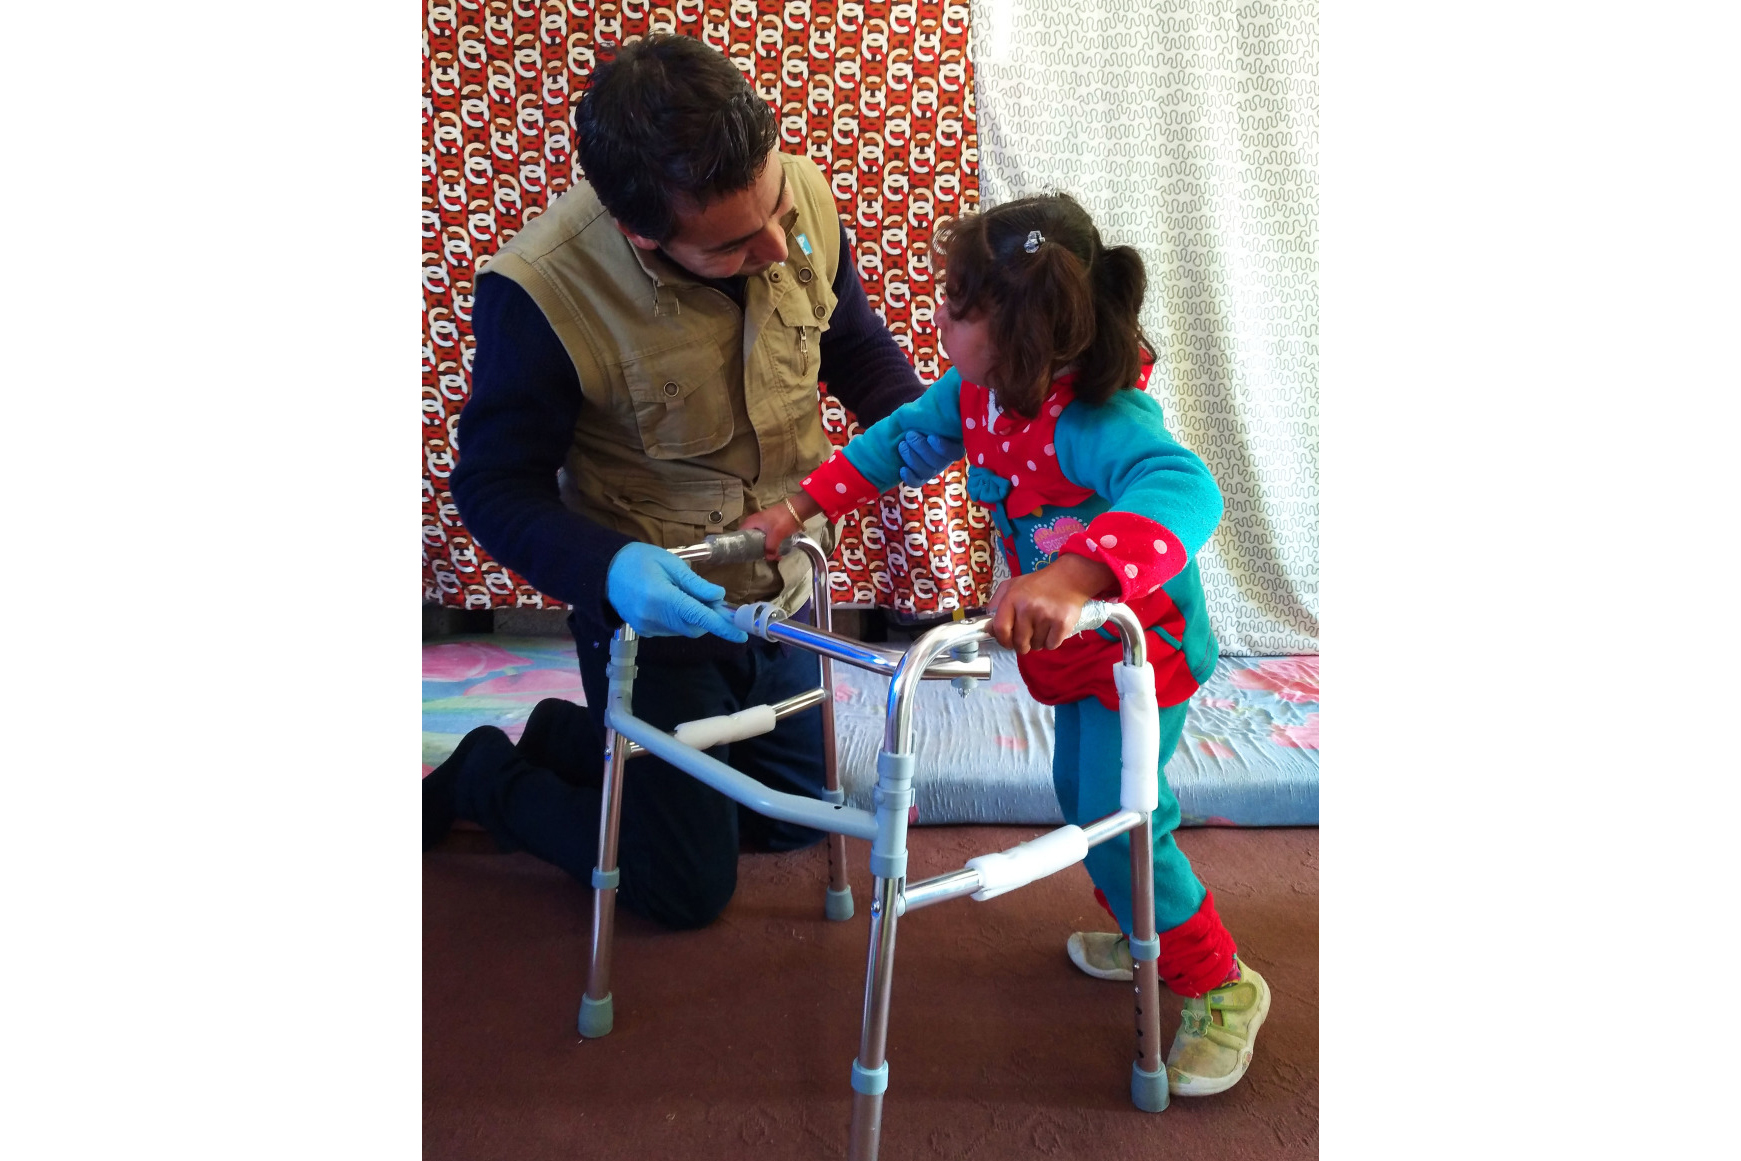 A six year old girl with cerebral palsy receives physical therapy from a Handicap International physical therapist in Iraq.